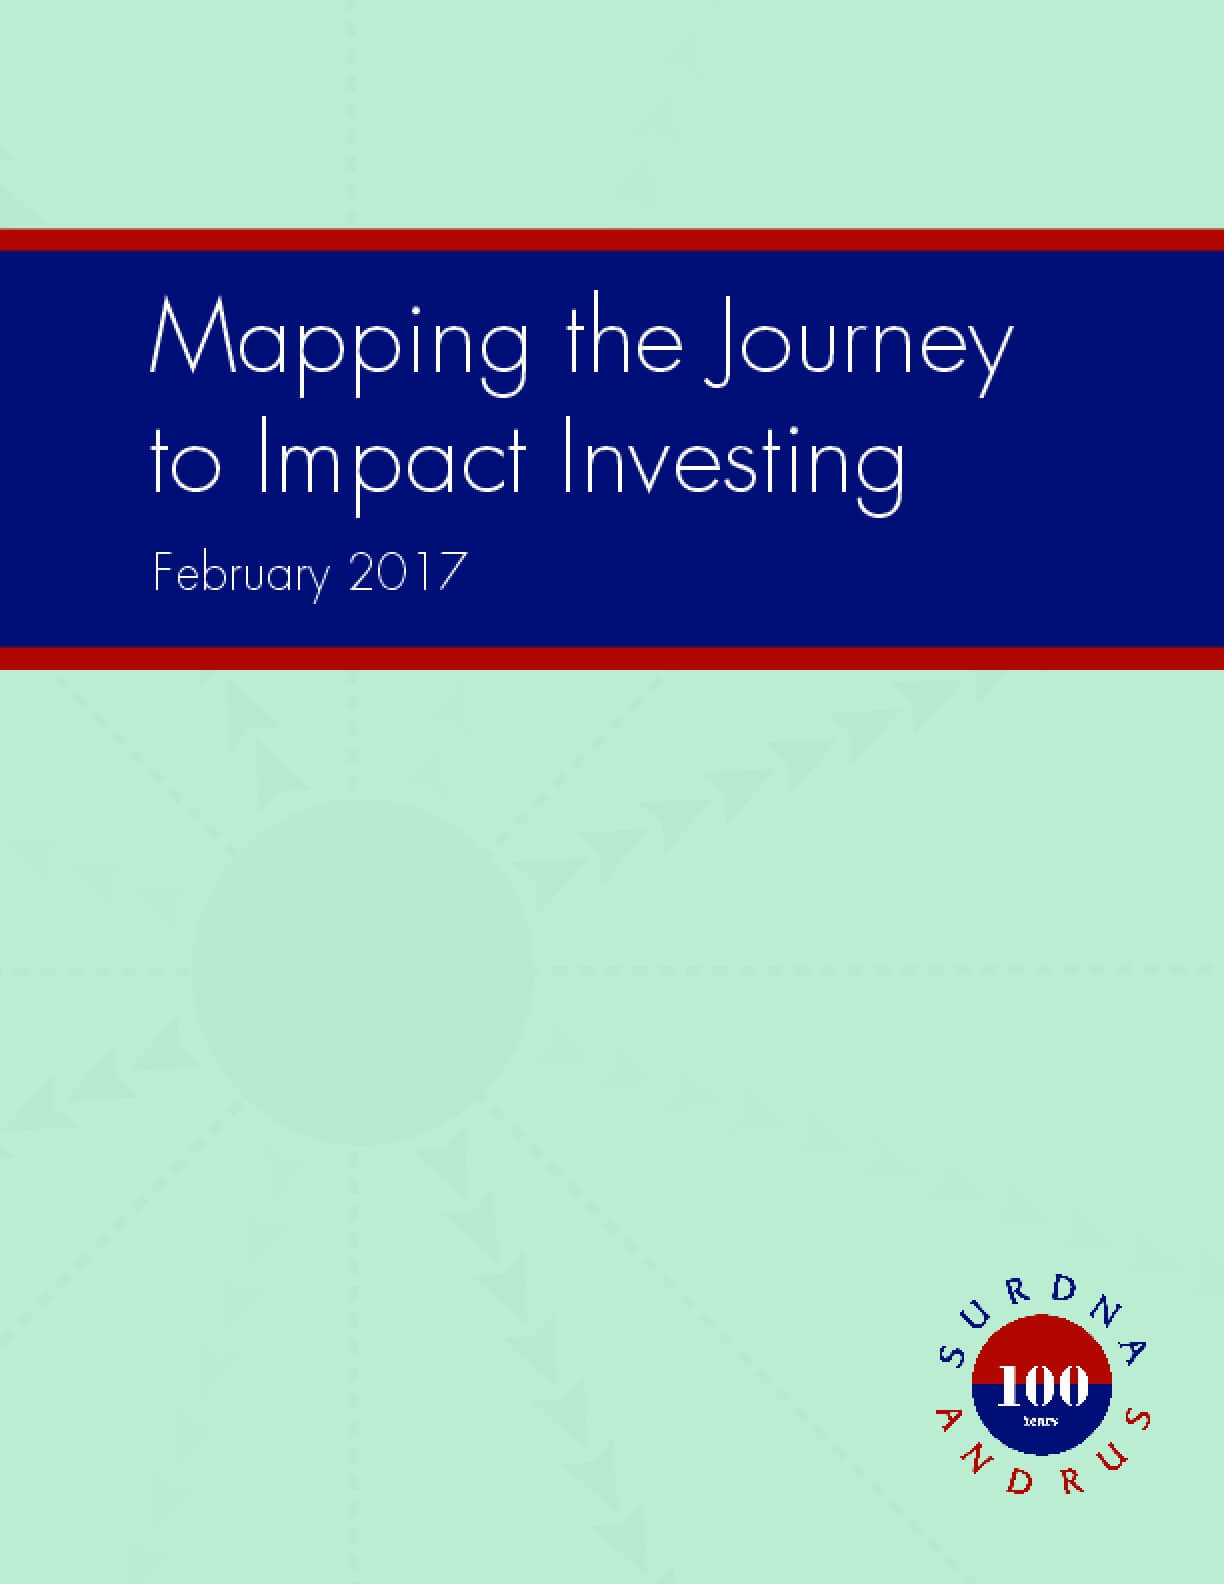 Mapping the Journey to Impact Investing